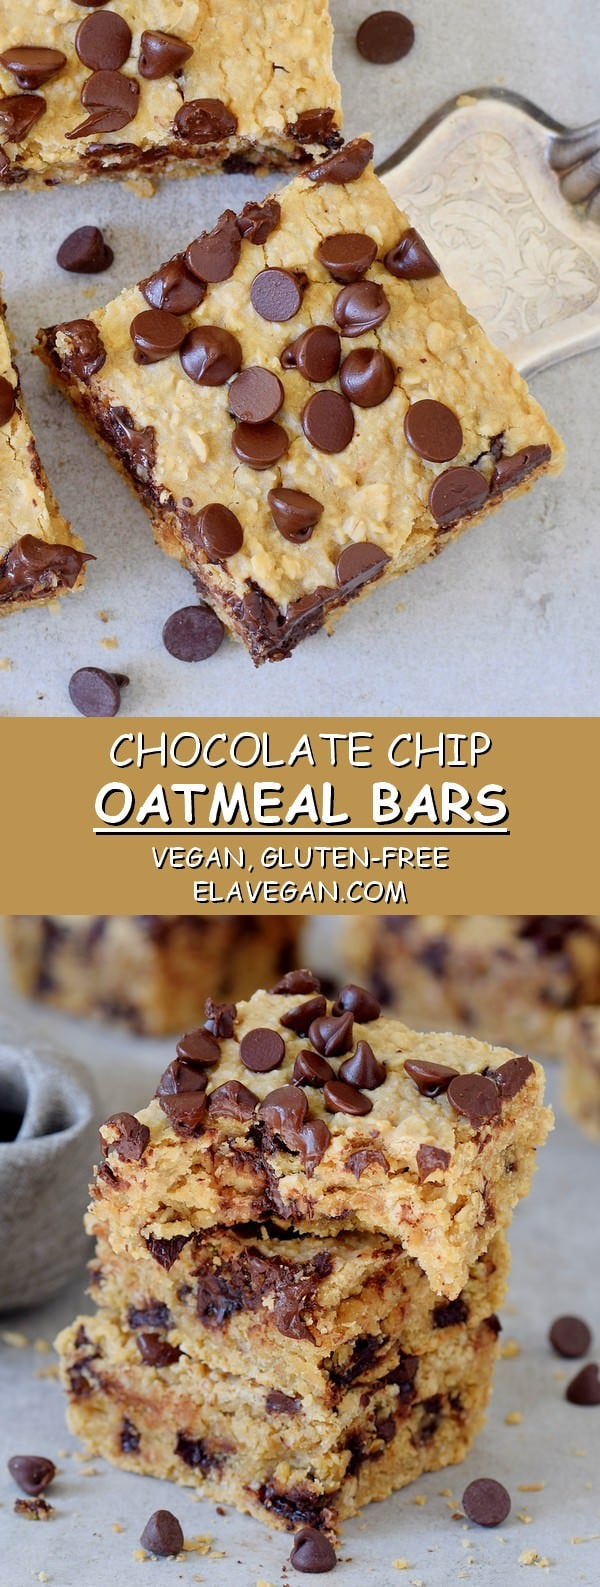 Healthy Chocolate Chip Oatmeal Bars Vegan Gluten-Free